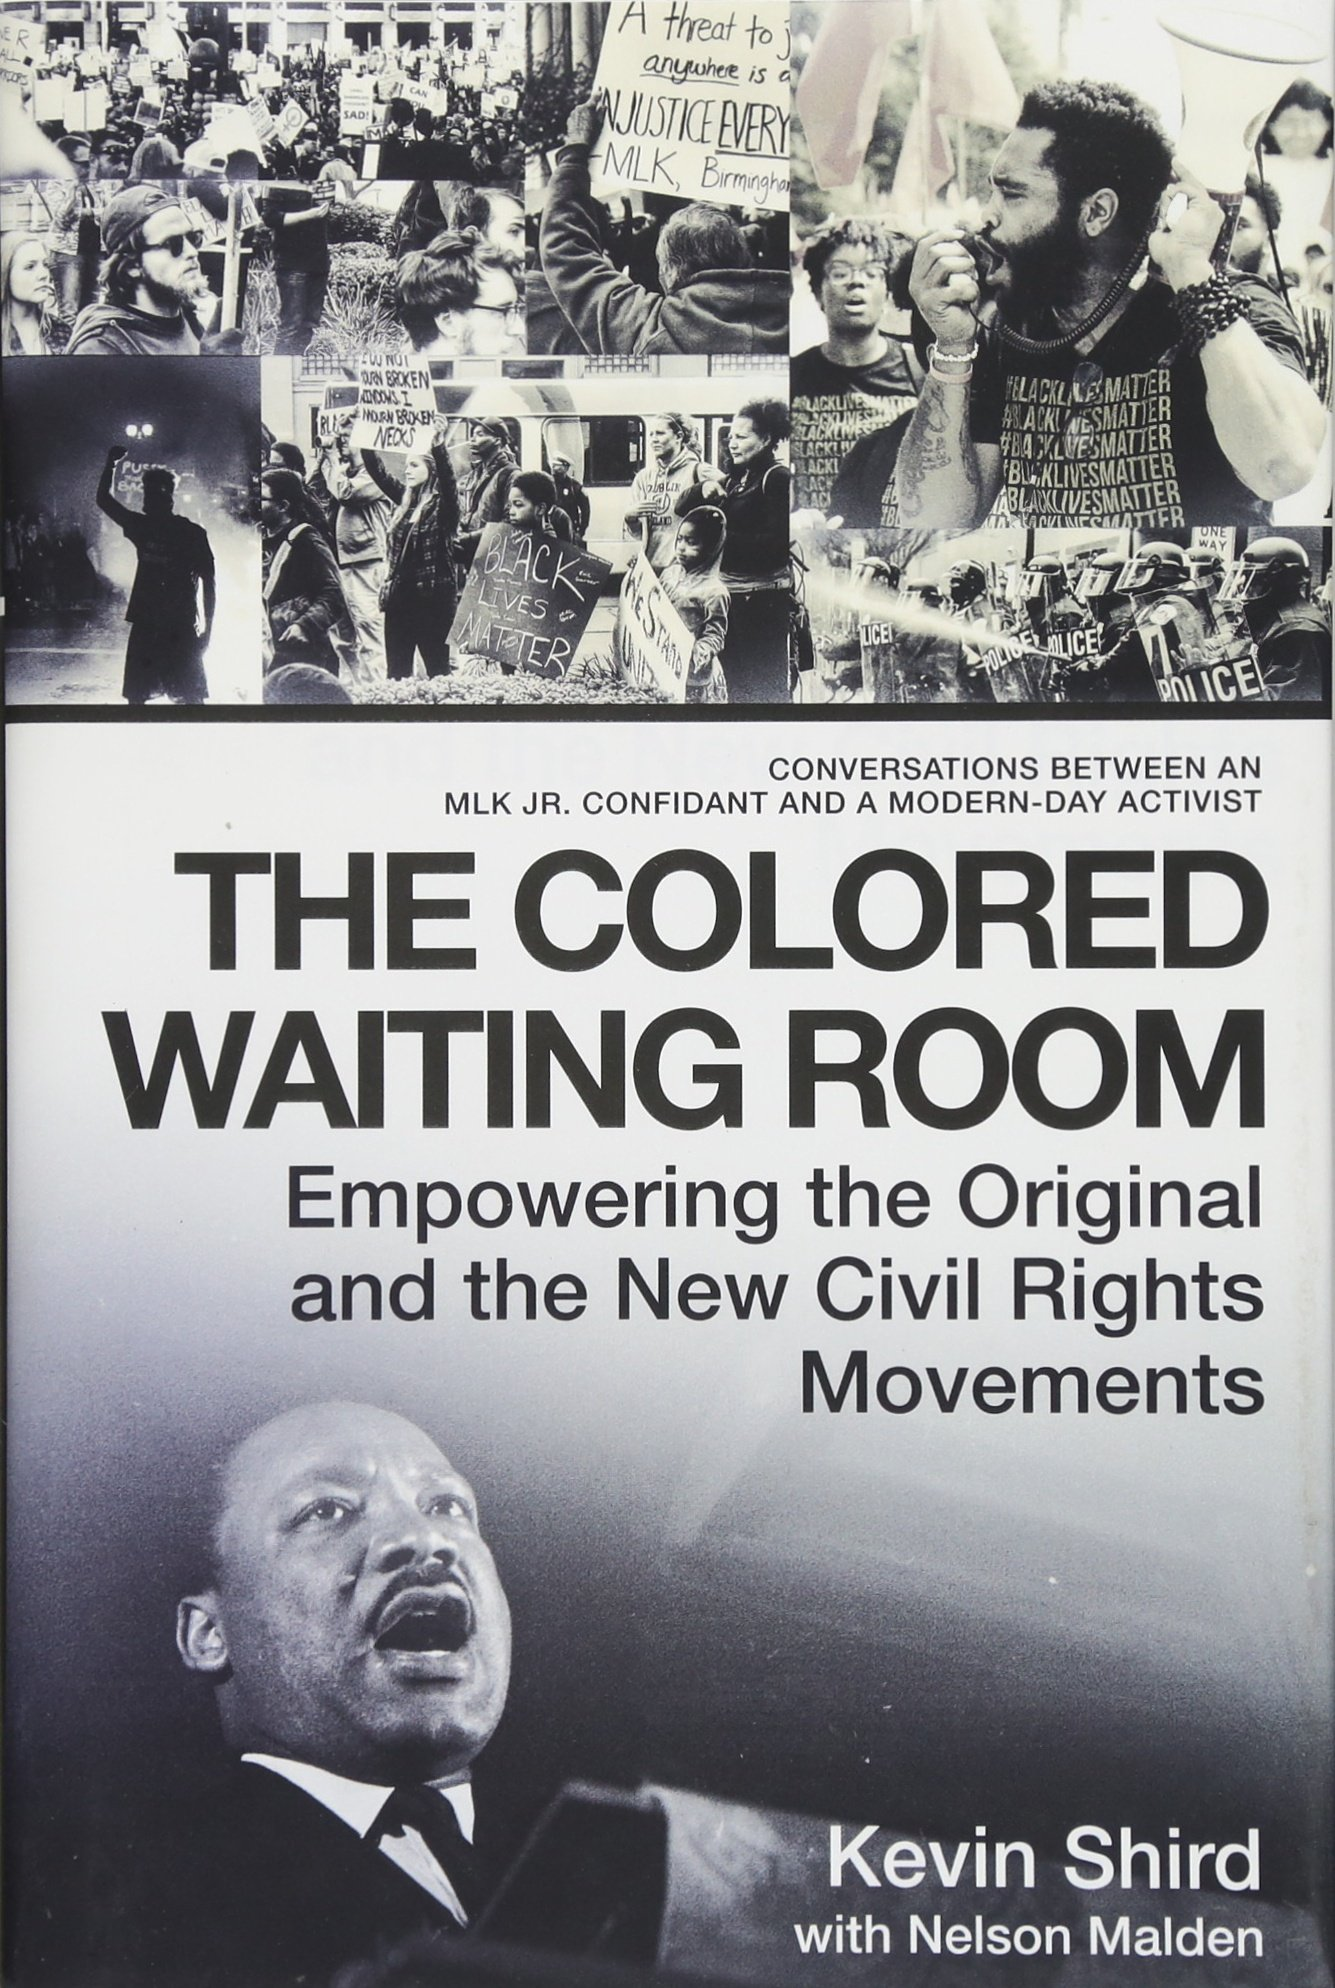 Read Online The Colored Waiting Room: Empowering the Original and the New Civil Rights Movements; Conversations Between an MLK Jr. Confidant and a Modern-Day Activist ebook